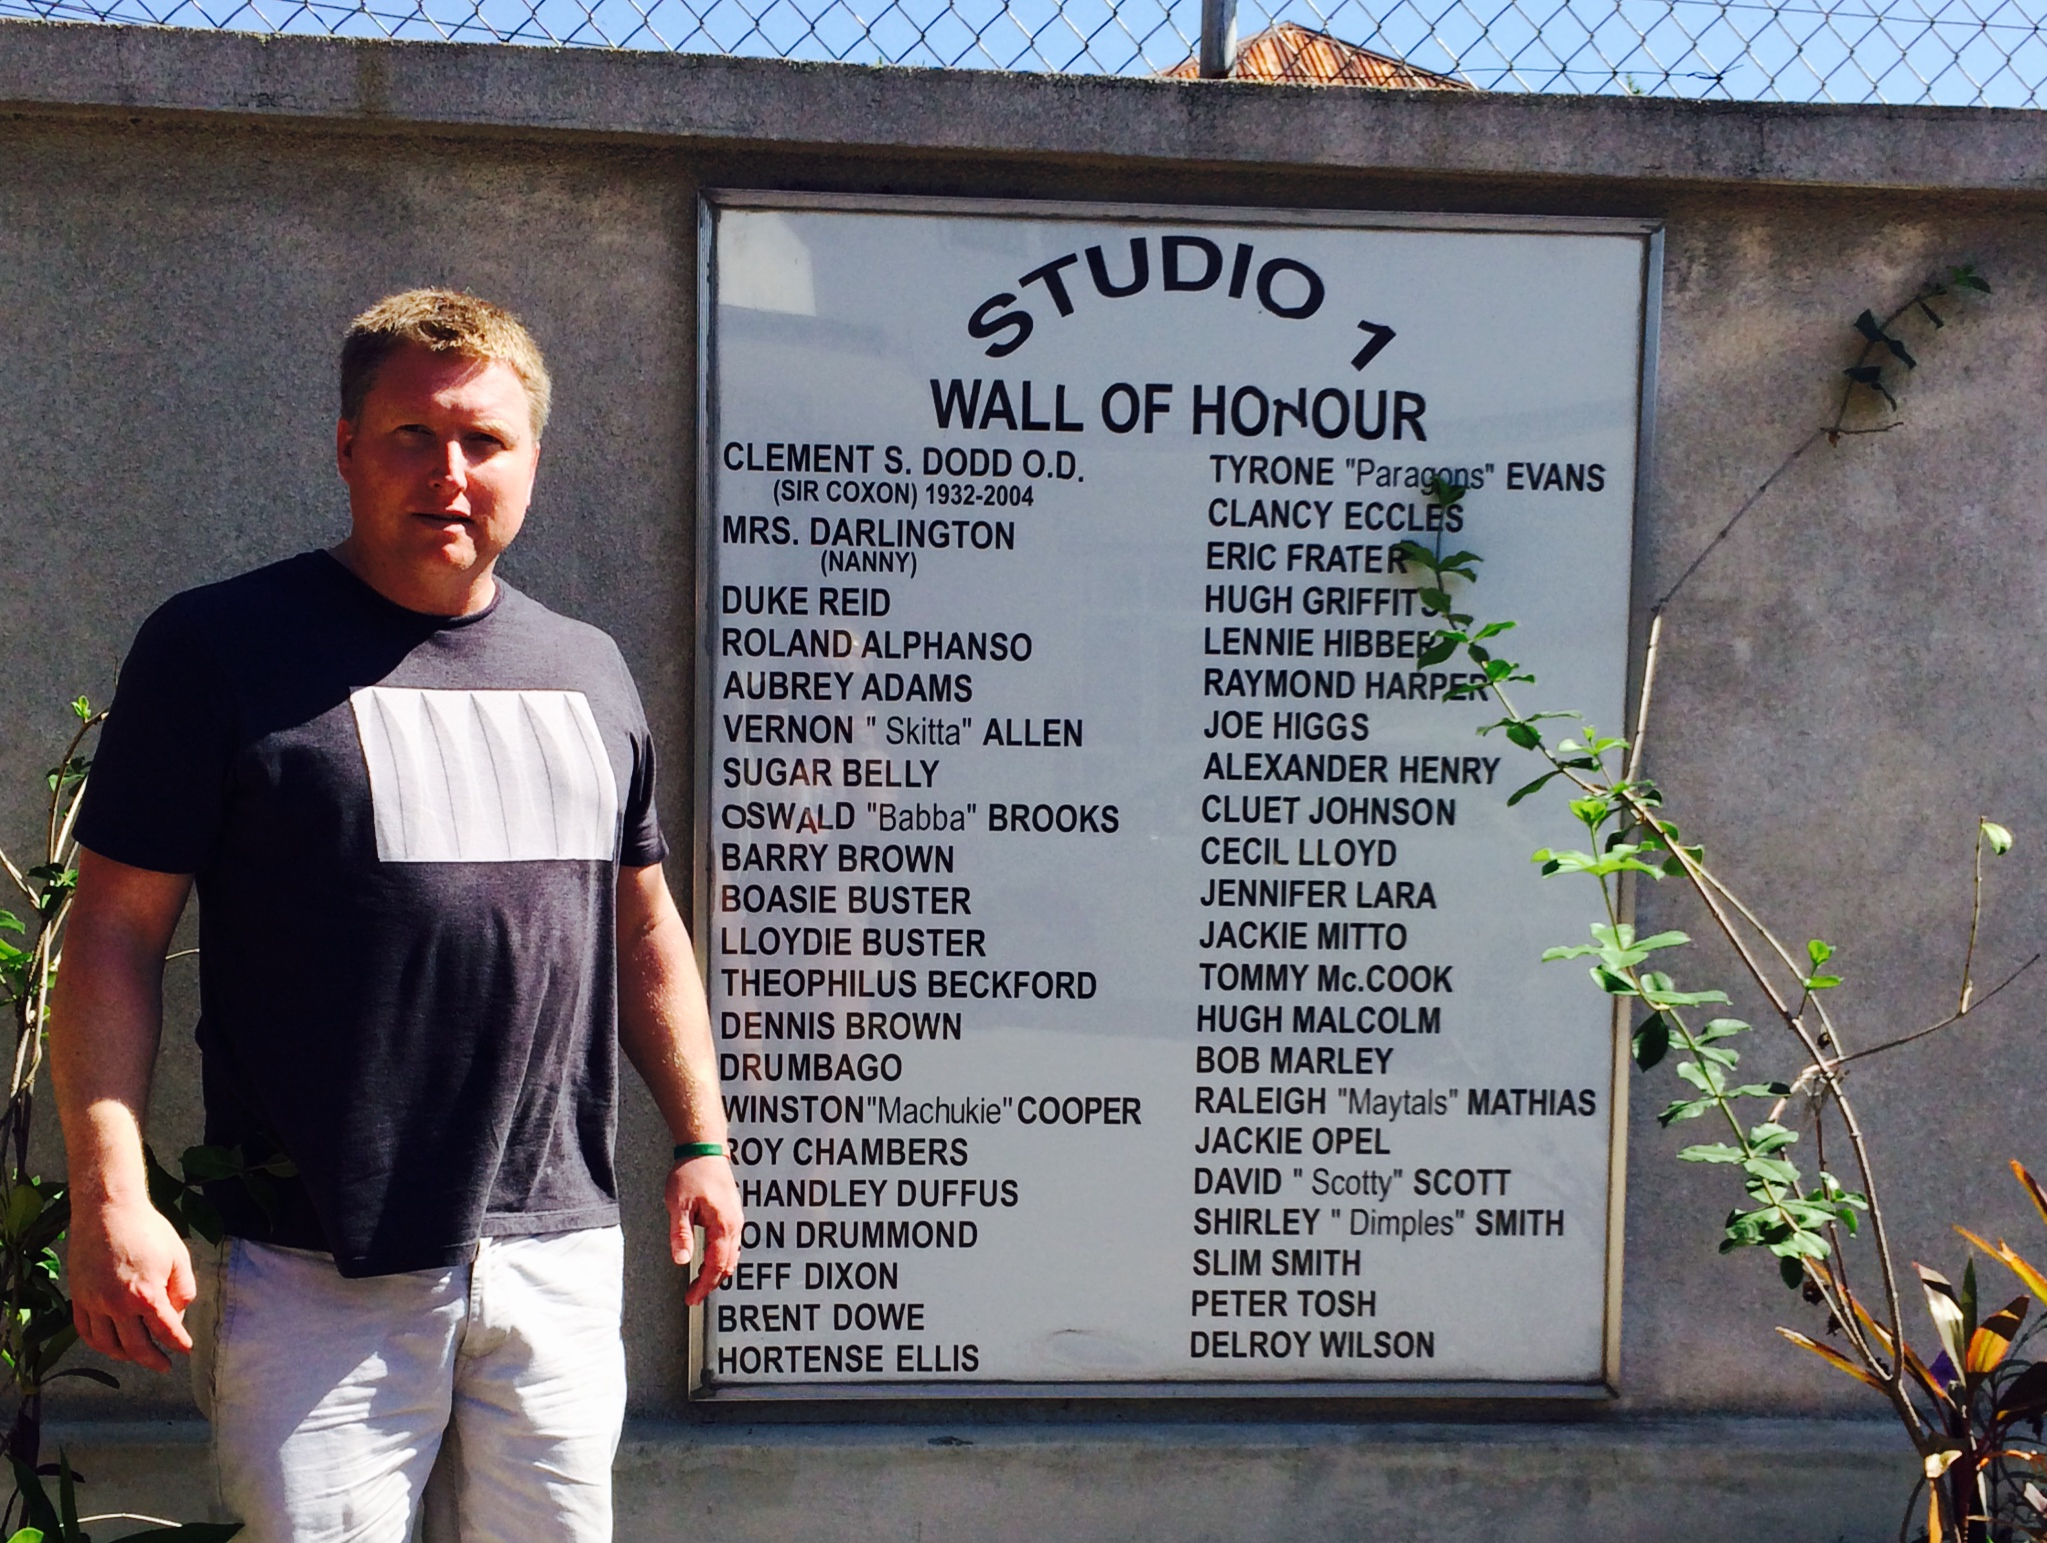 Raver next to the Studio One Hall of Honour